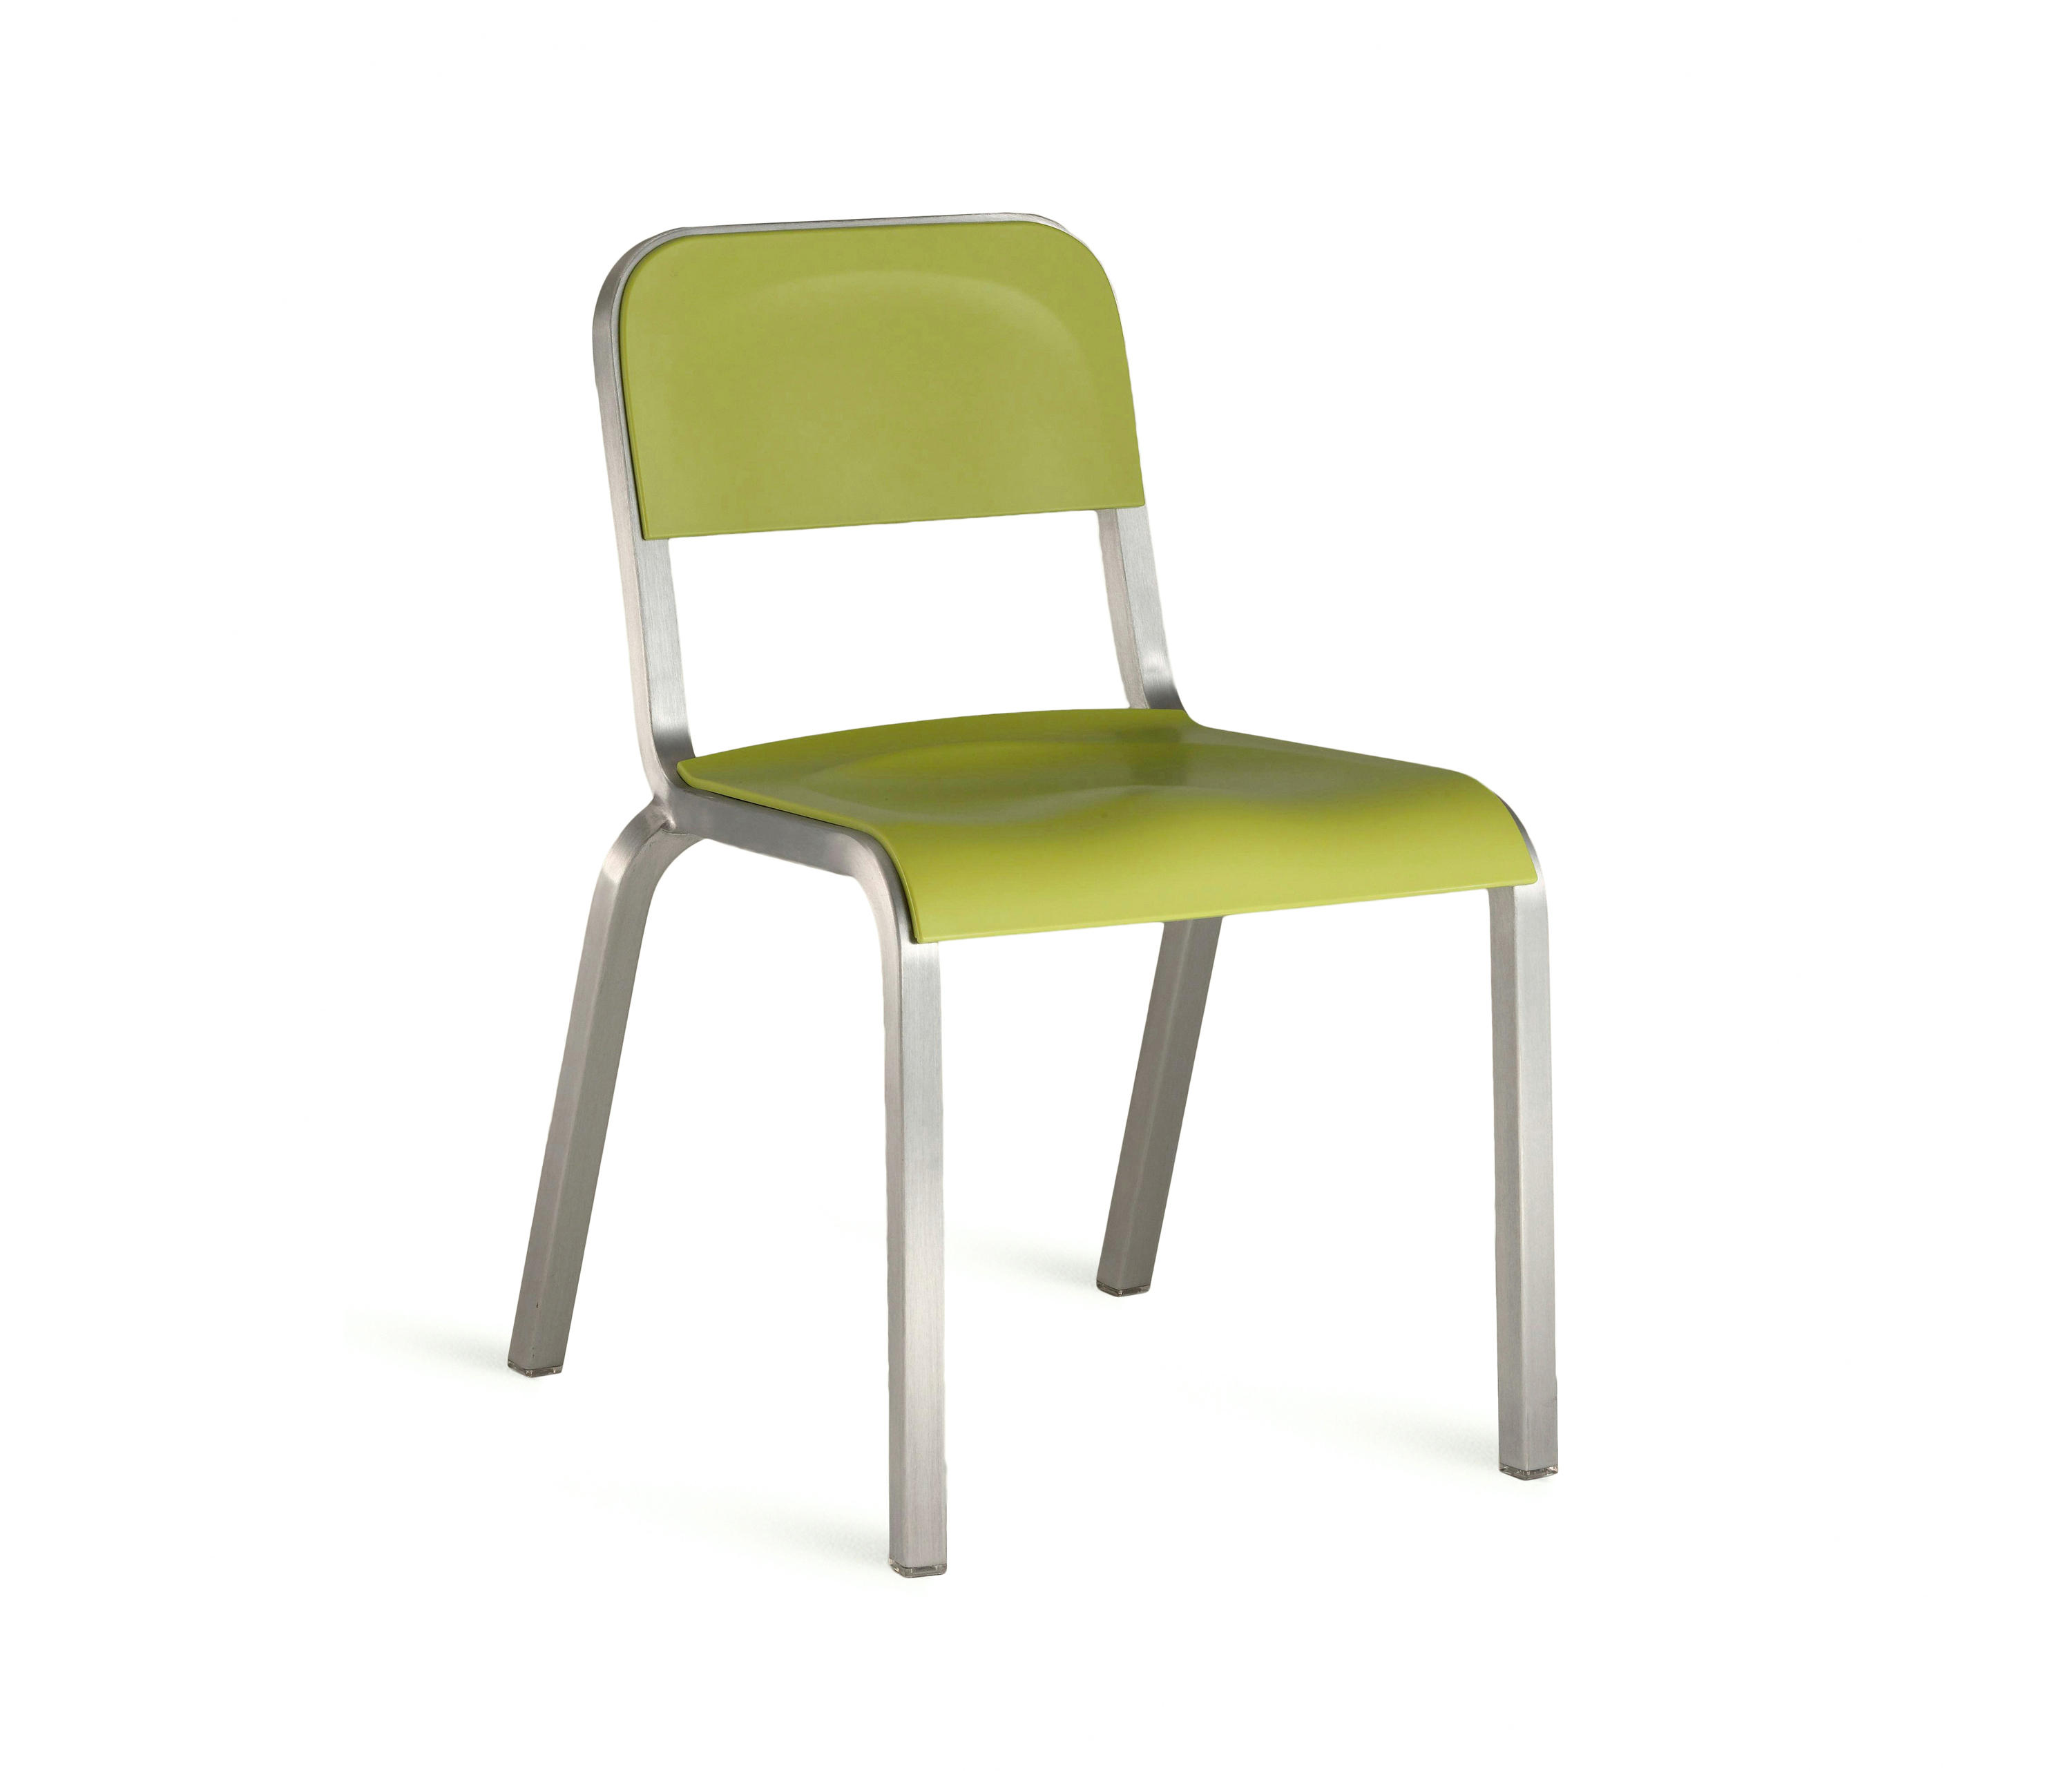 chair  restaurant chairs from emeco  architonic -   chair by emeco  restaurant chairs